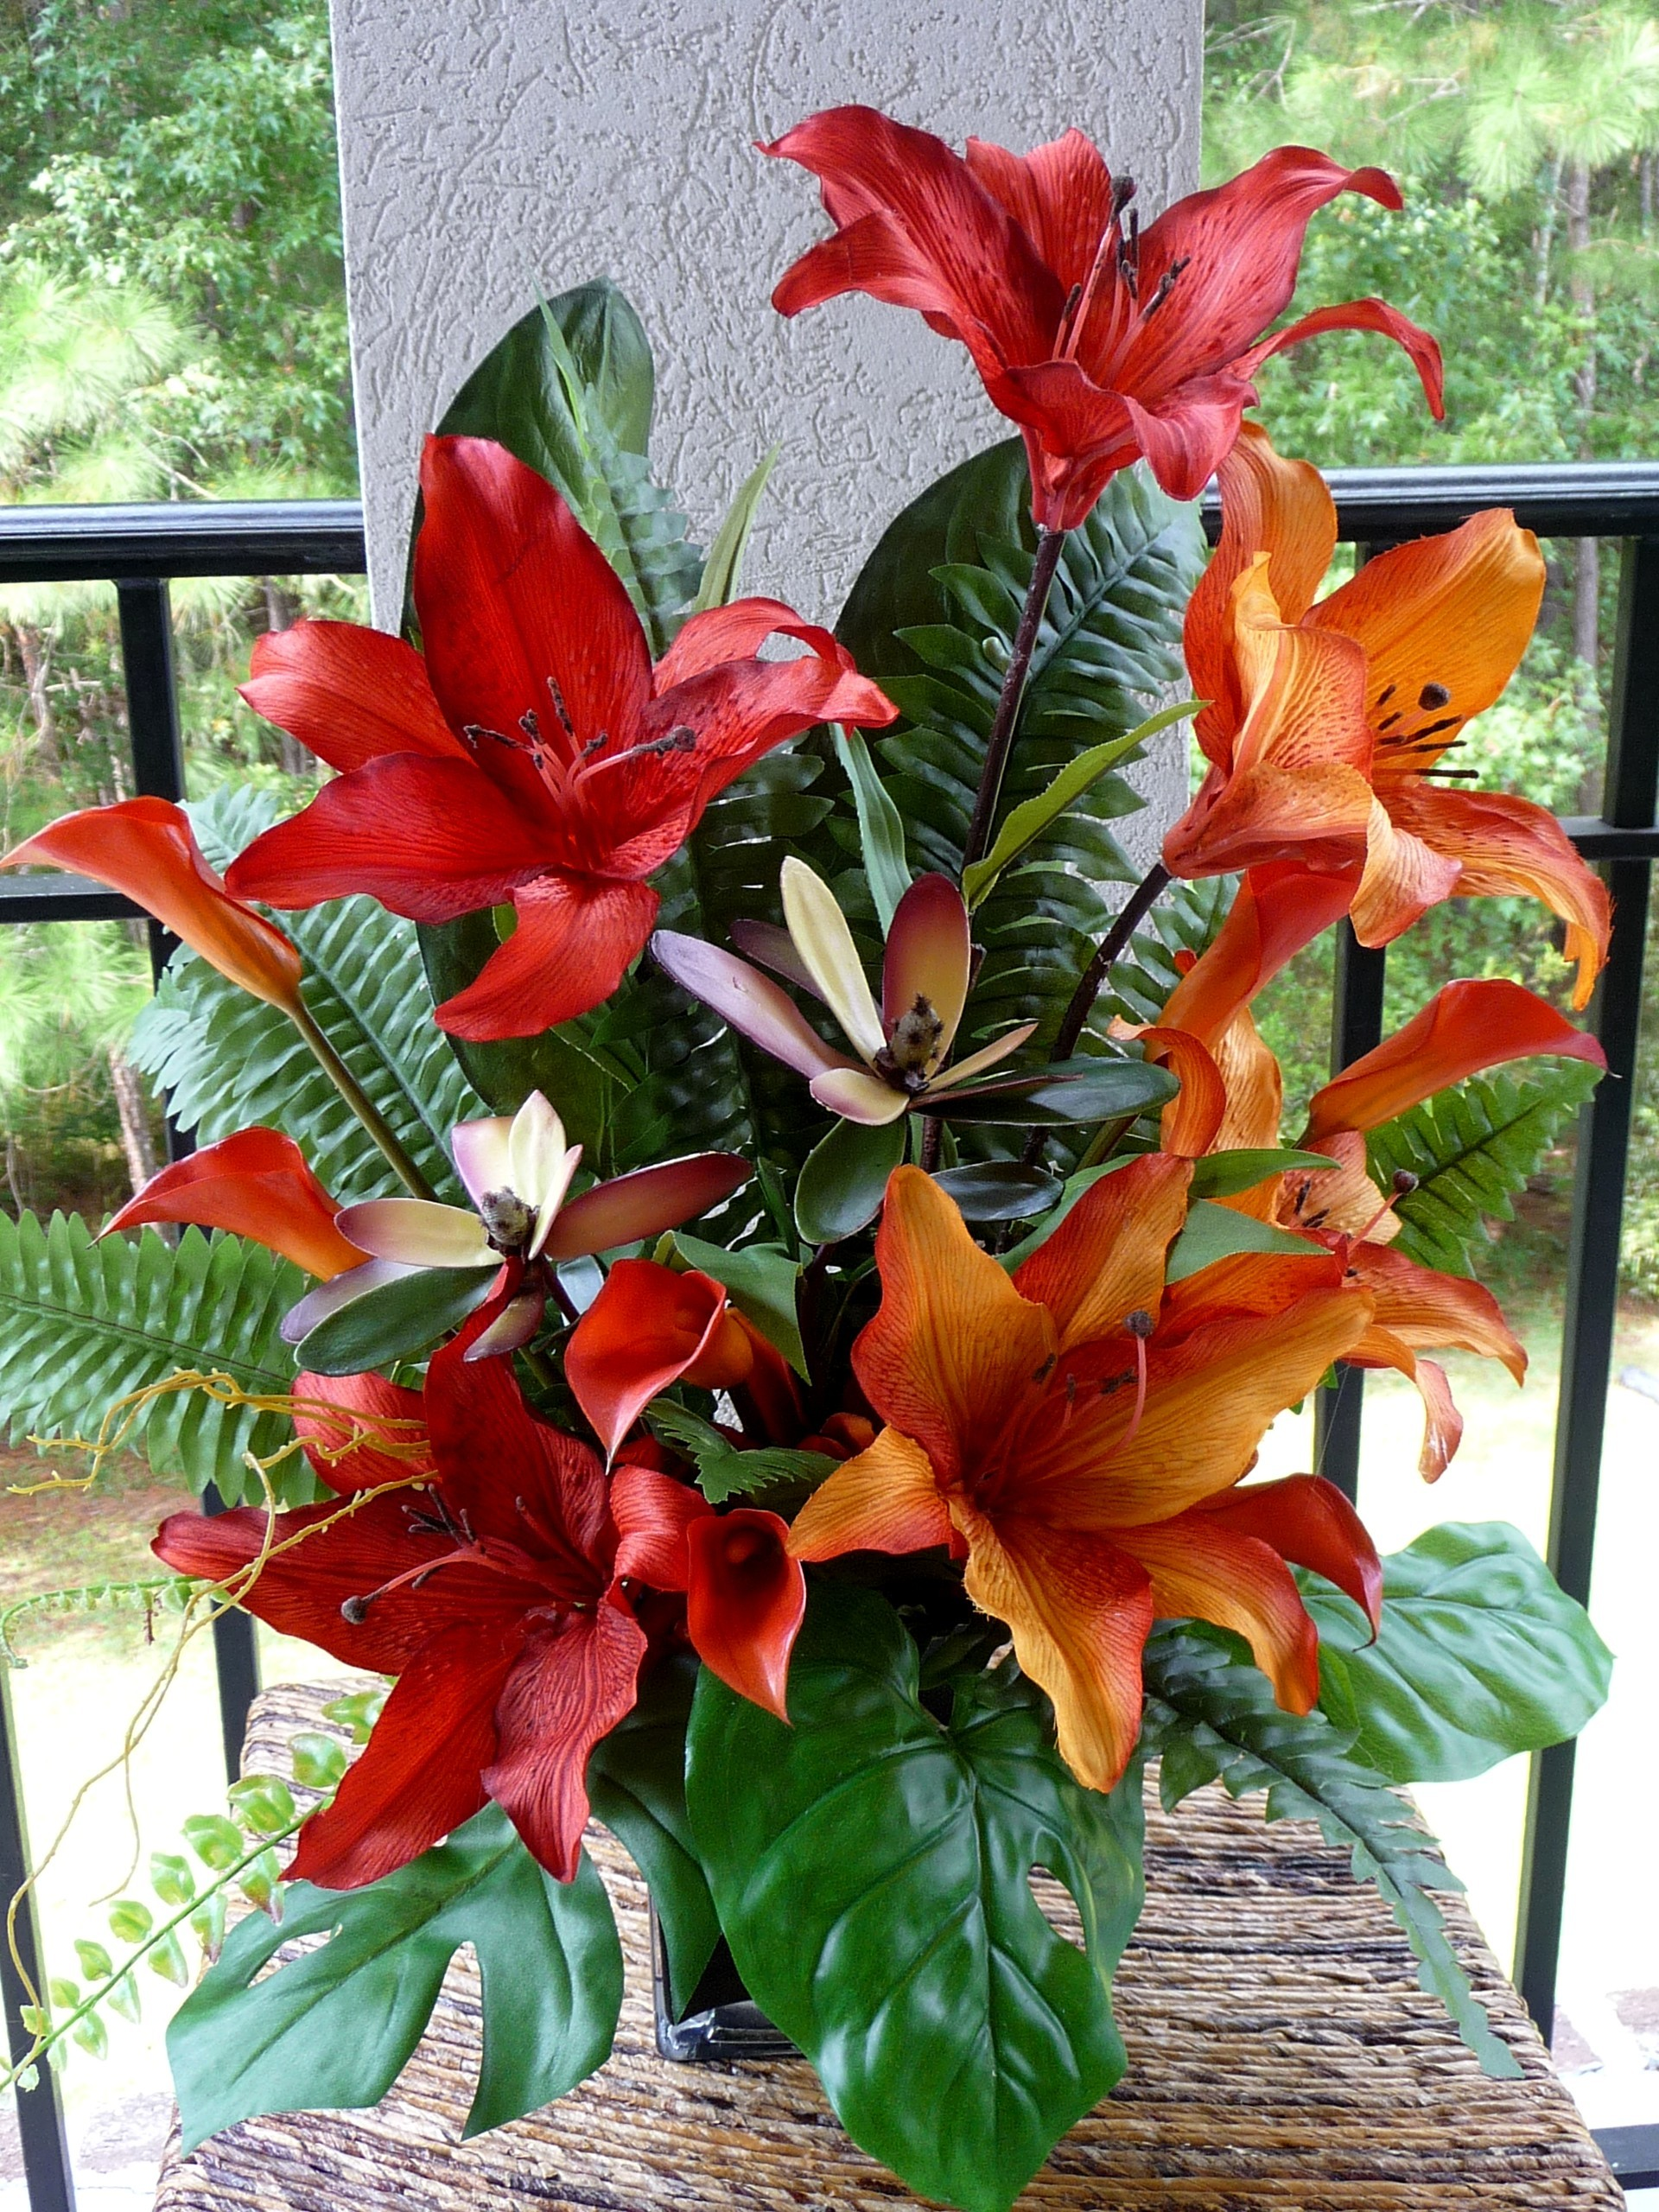 Ceremony, Inspiration, Reception, Flowers & Decor, orange, Ceremony Flowers, Centerpieces, Flowers, Centerpiece, Wedding, Lilies, Board, Burnt, Rent, Savannah event decor, Tropicals